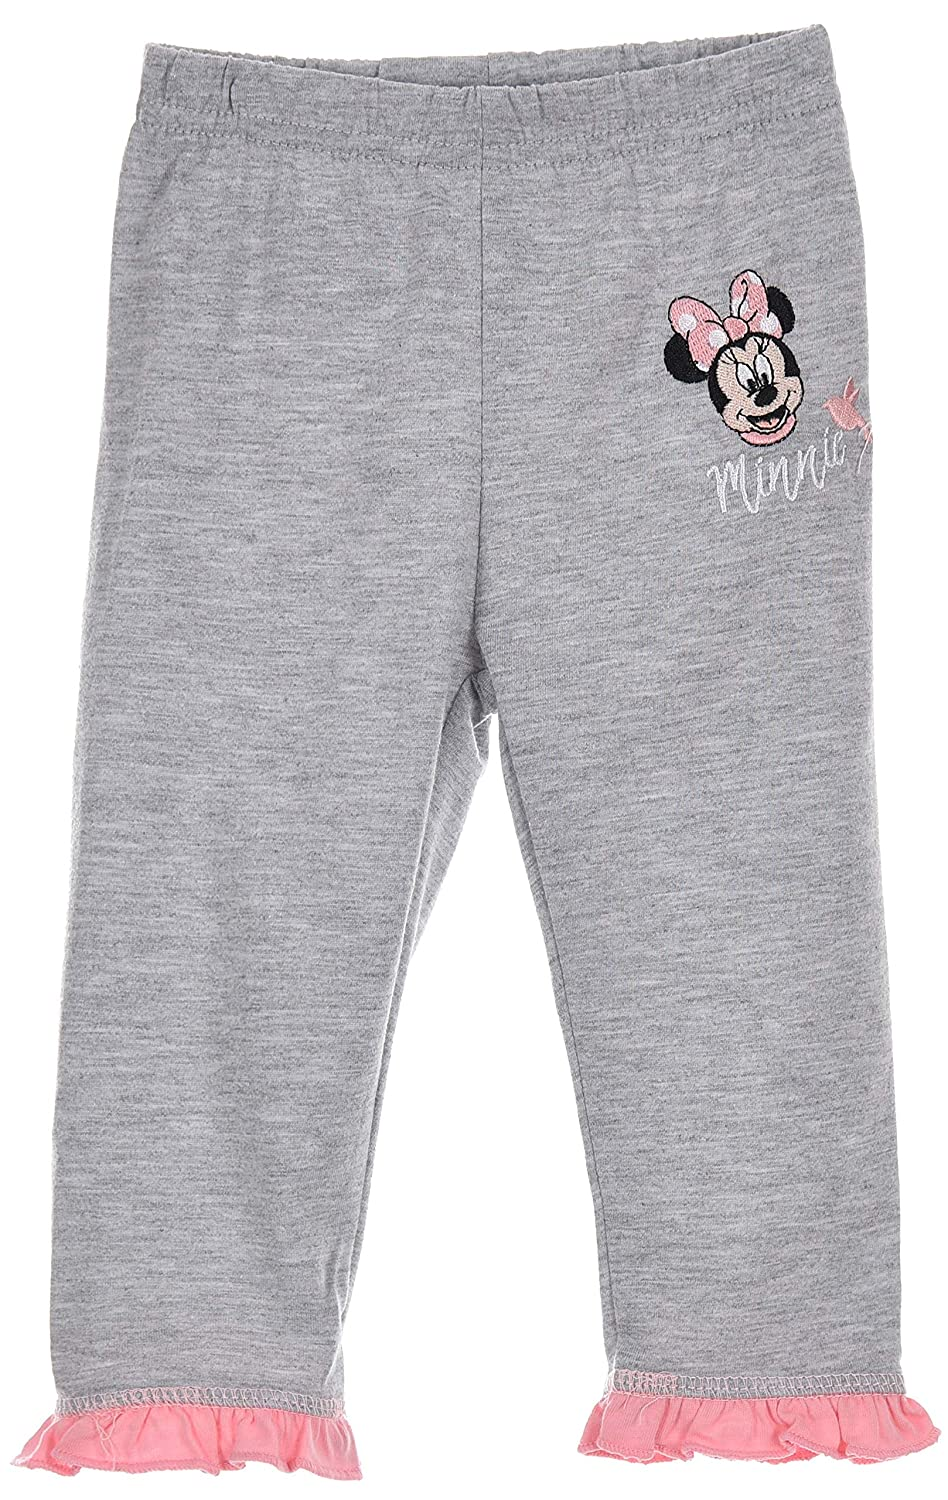 Light Grey,9 Months,L- 28 Inch Disney Minnie Mouse Newborn Leggings Baby Leggings Baby Tights for 6-24 Months,